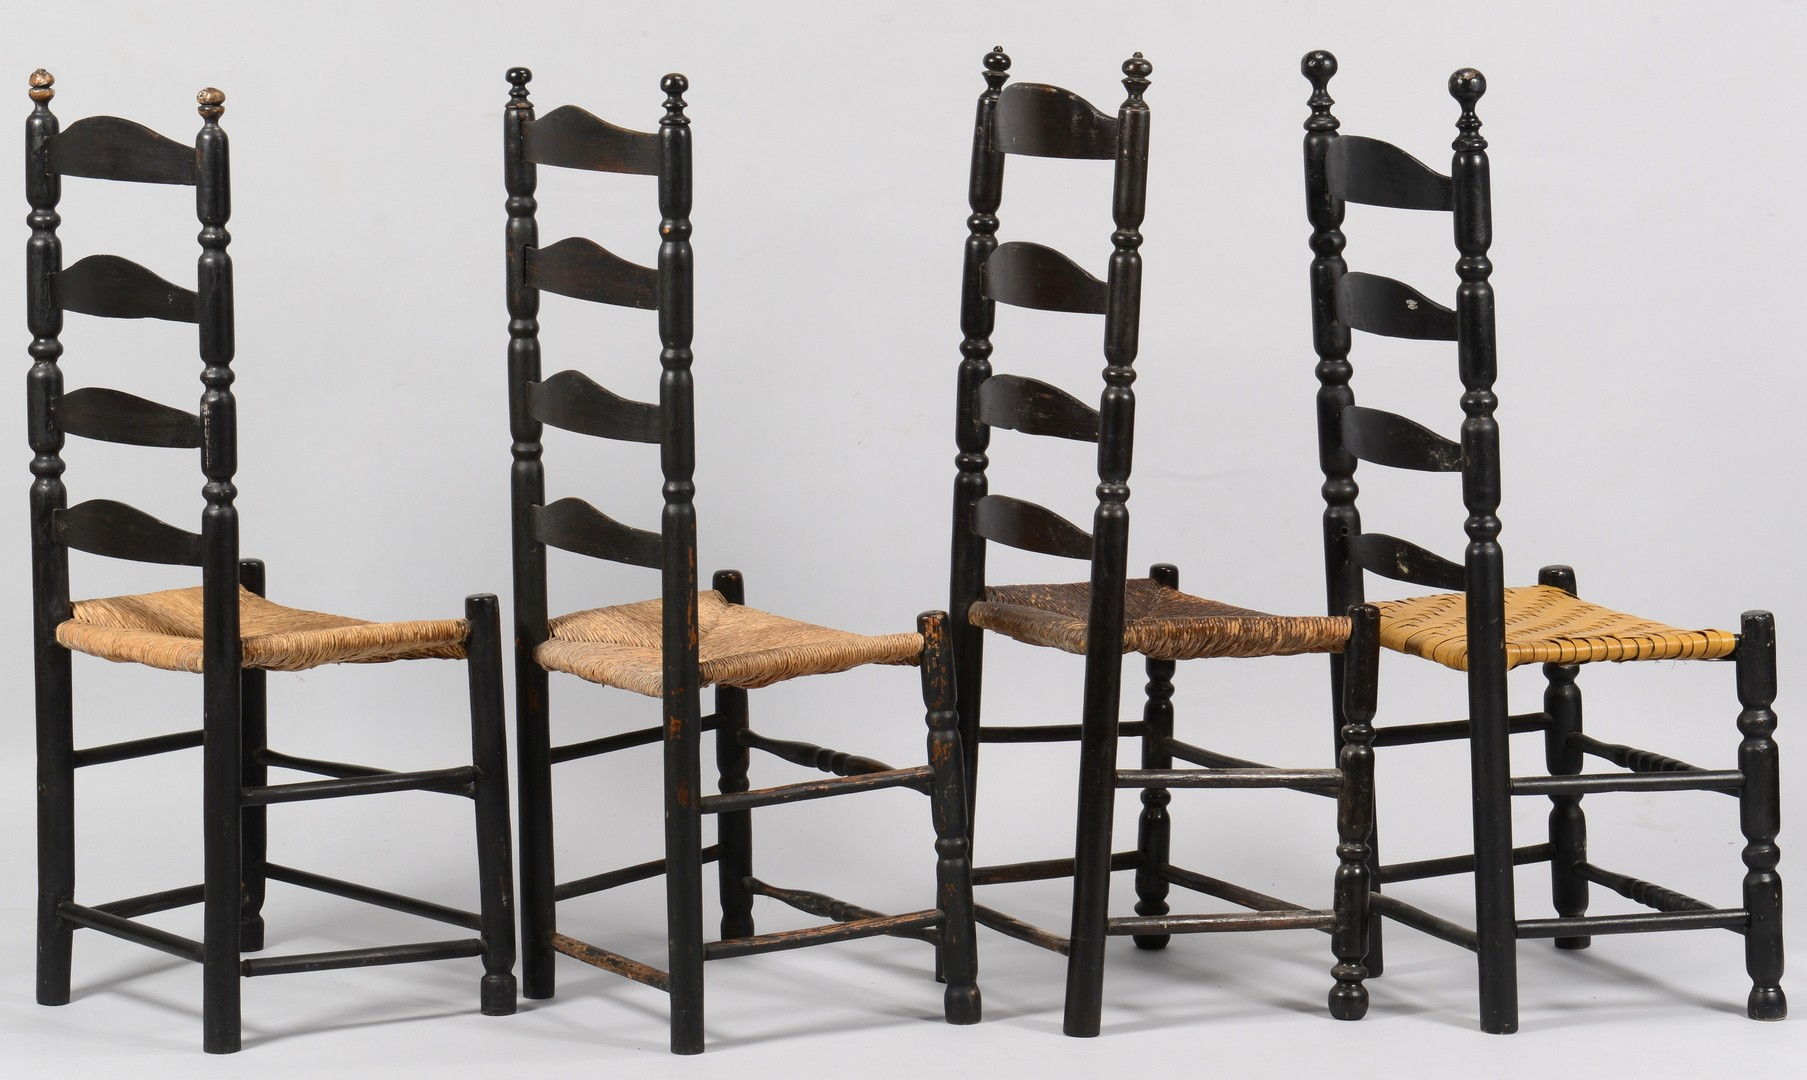 Lot 283: Group 5 Ladder Back Chairs, 19th c.